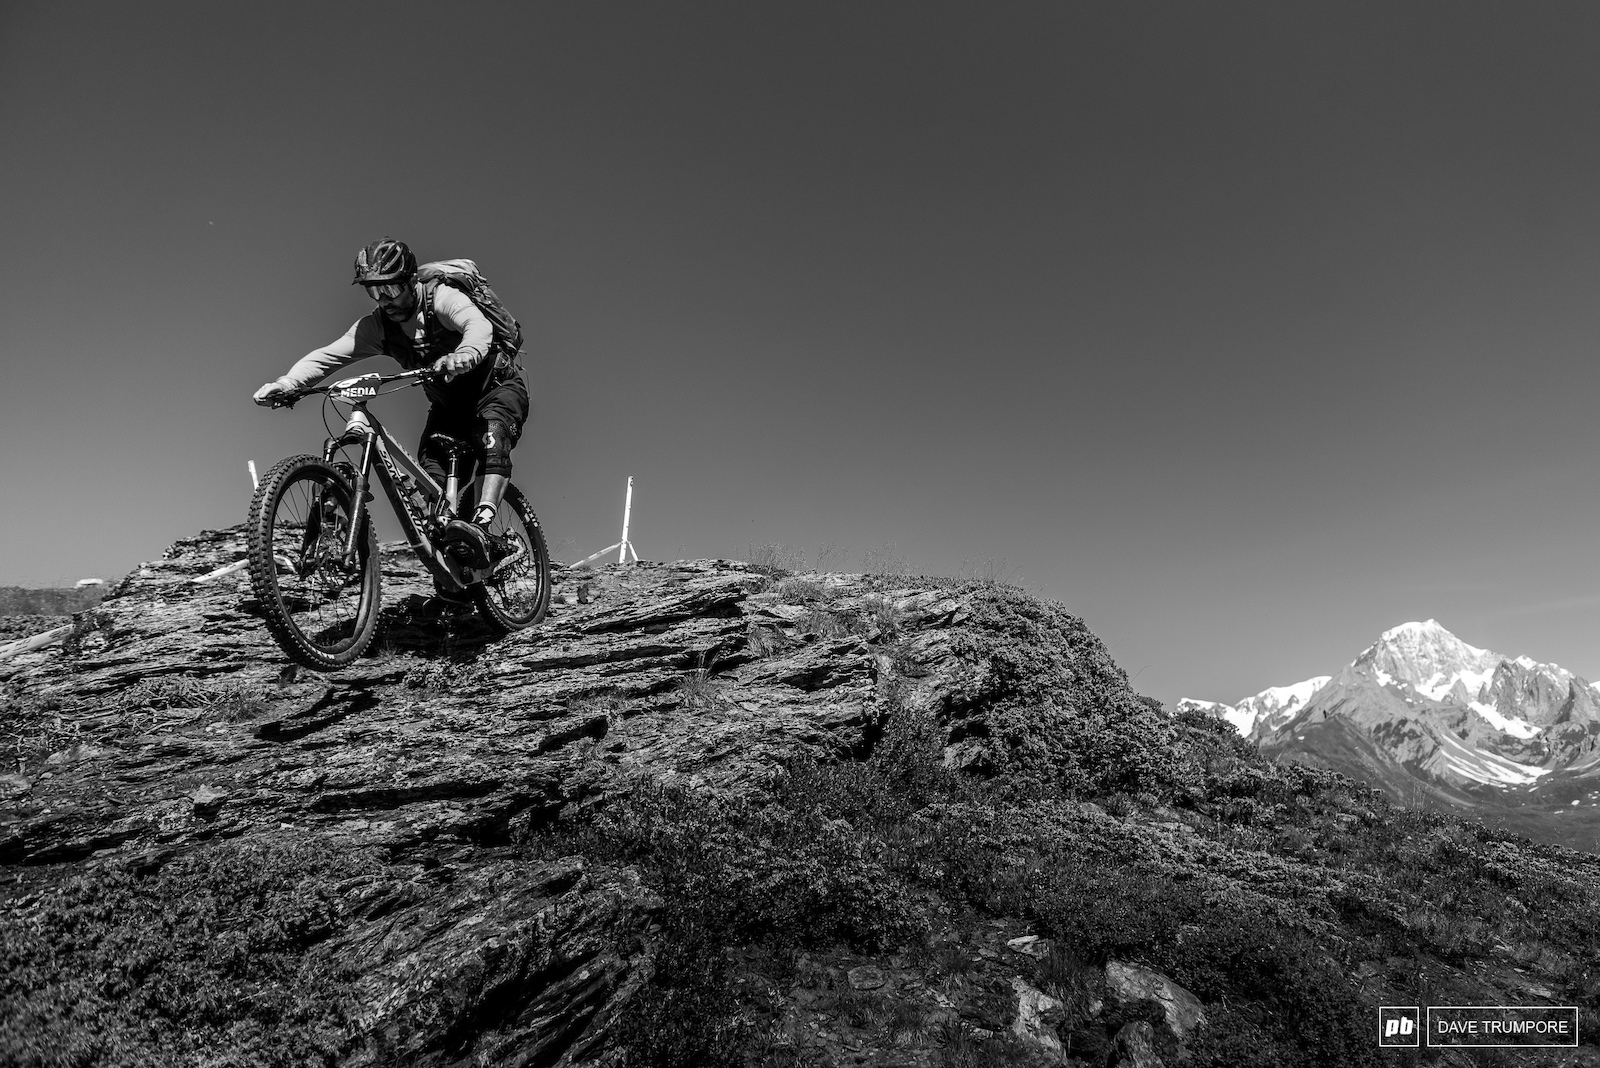 Stage 1 drops in of a rocky ledge once again with Mont Blanc in the background.